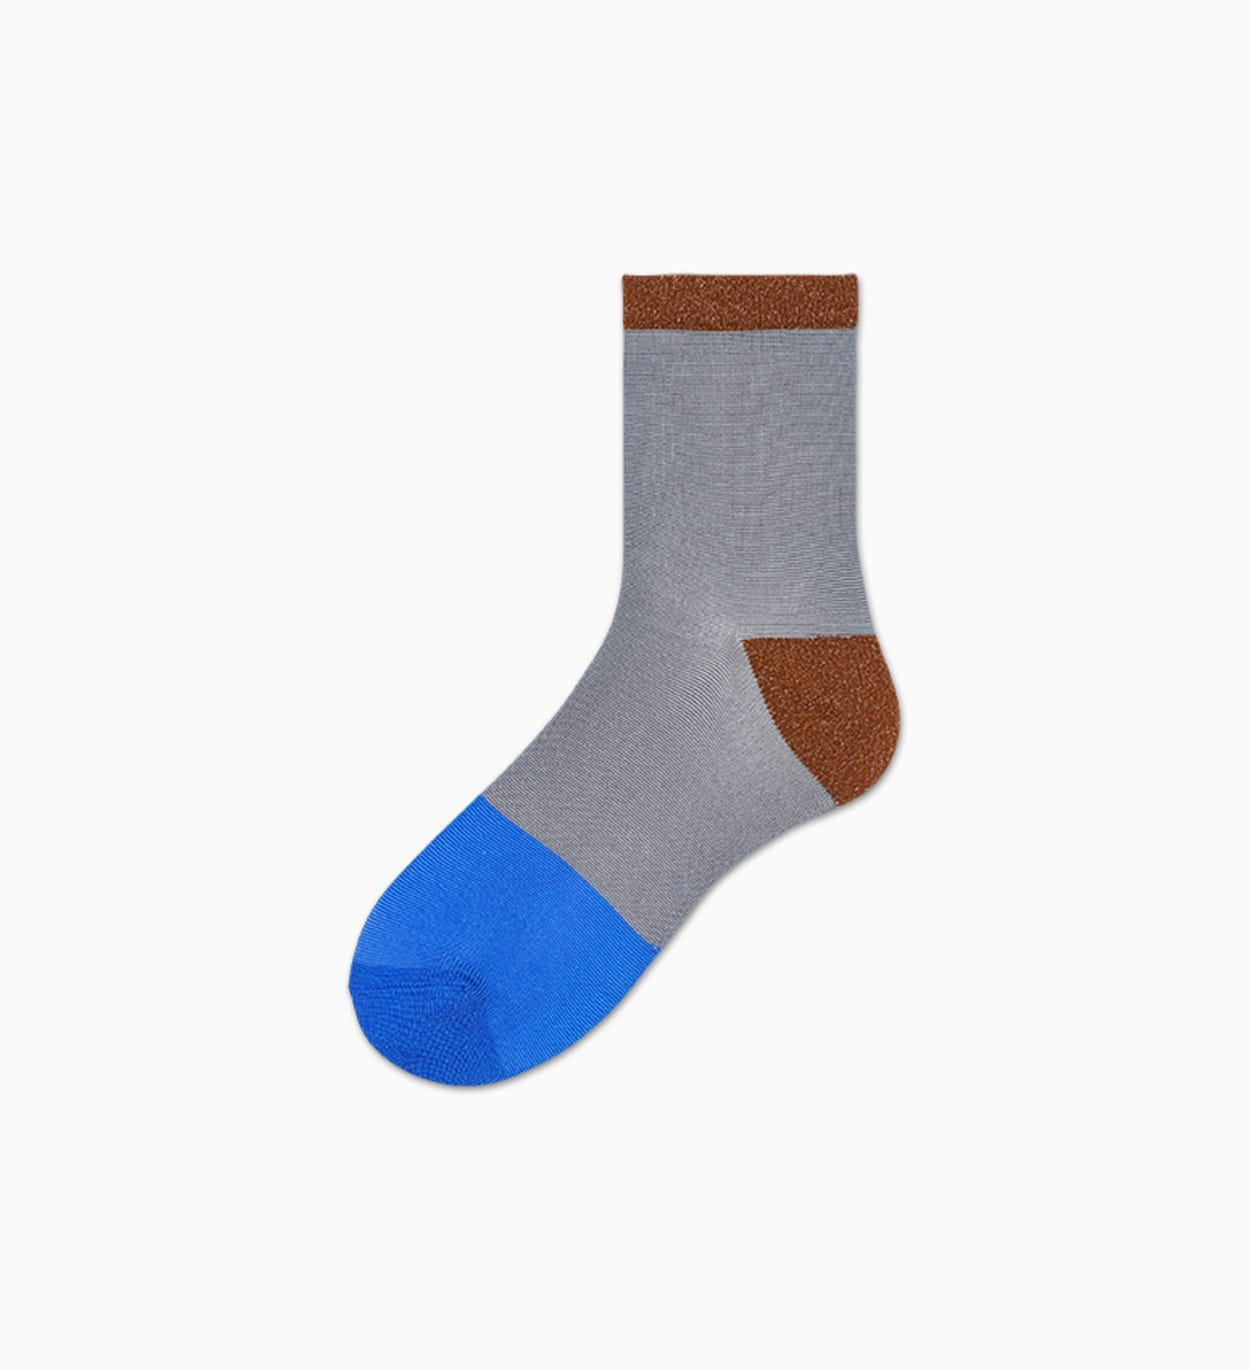 Women's Ankle Socks: Liza - Gray | Hysteria